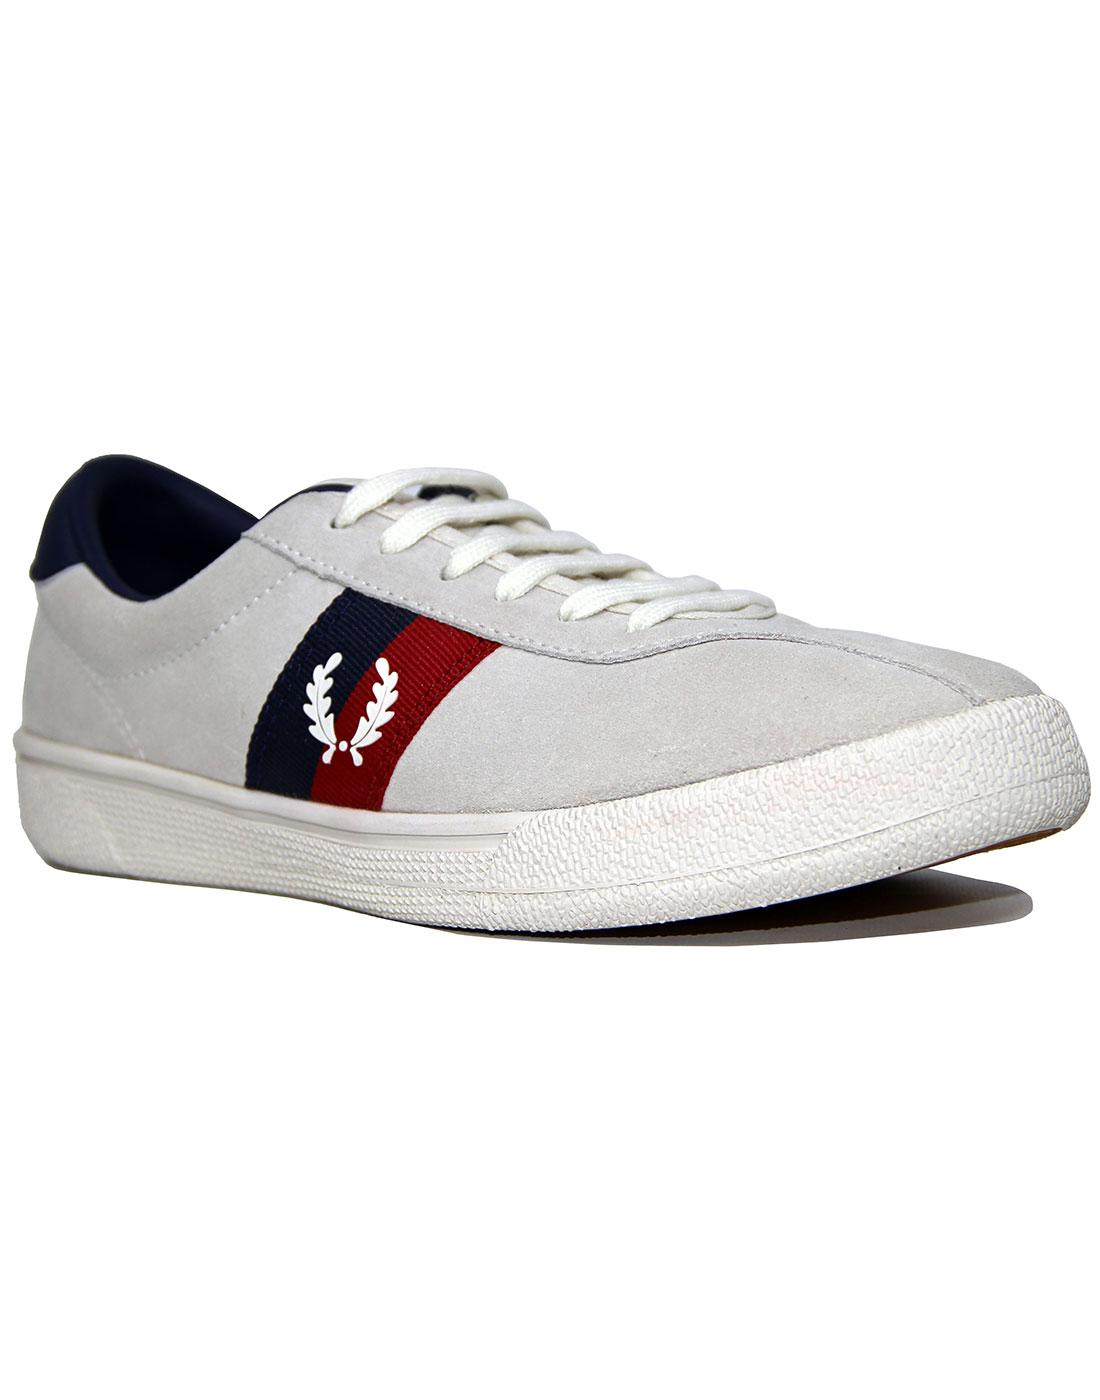 FRED PERRY B108 Retro Suede Tennis Trainers SW